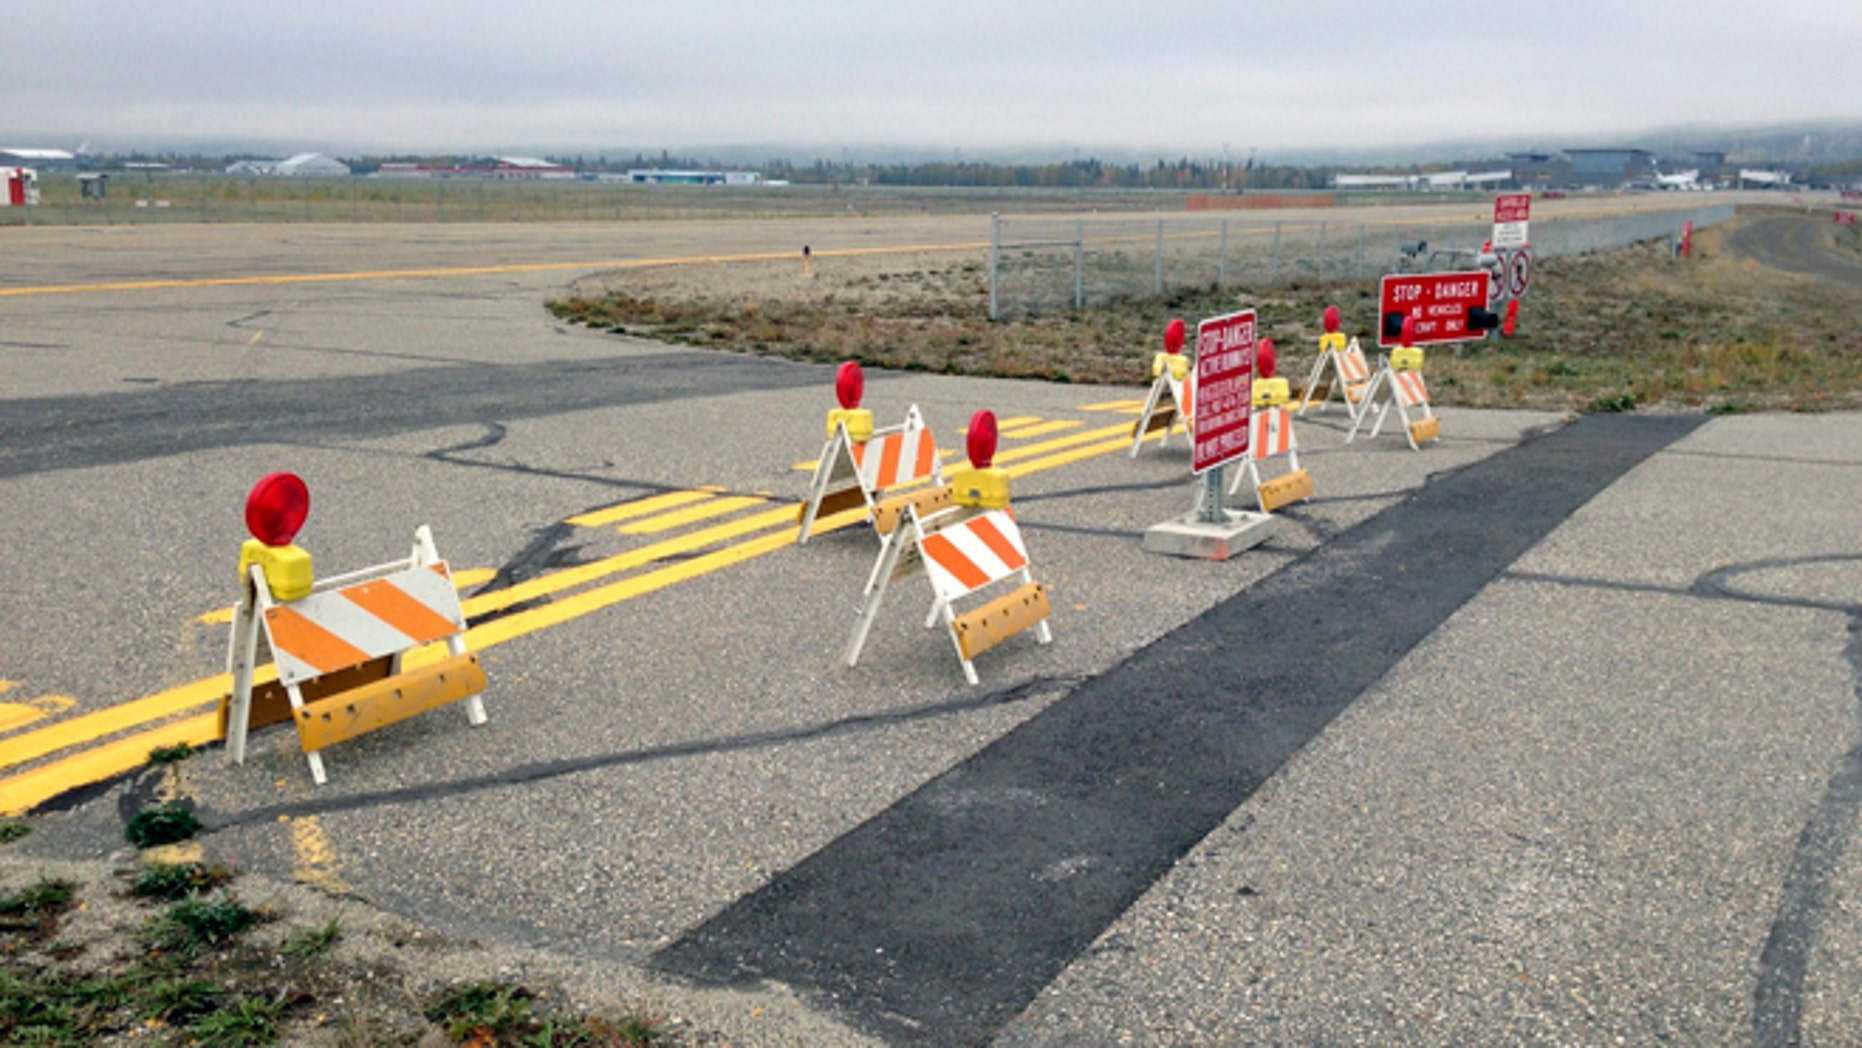 This Sept. 20, 2013 image provided by the Fairbanks International Airport shows the barricaded entrance to a taxiway, at Float Pond Road blocking access to Taxiway B in Fairbanks,  Alaska. A glitch in the Apple Maps app on newer iPhones and iPads guides people up to this runway at Fairbanks International Airport instead of the proper route to the terminal. (AP Photo/Fairbanks International Airport)